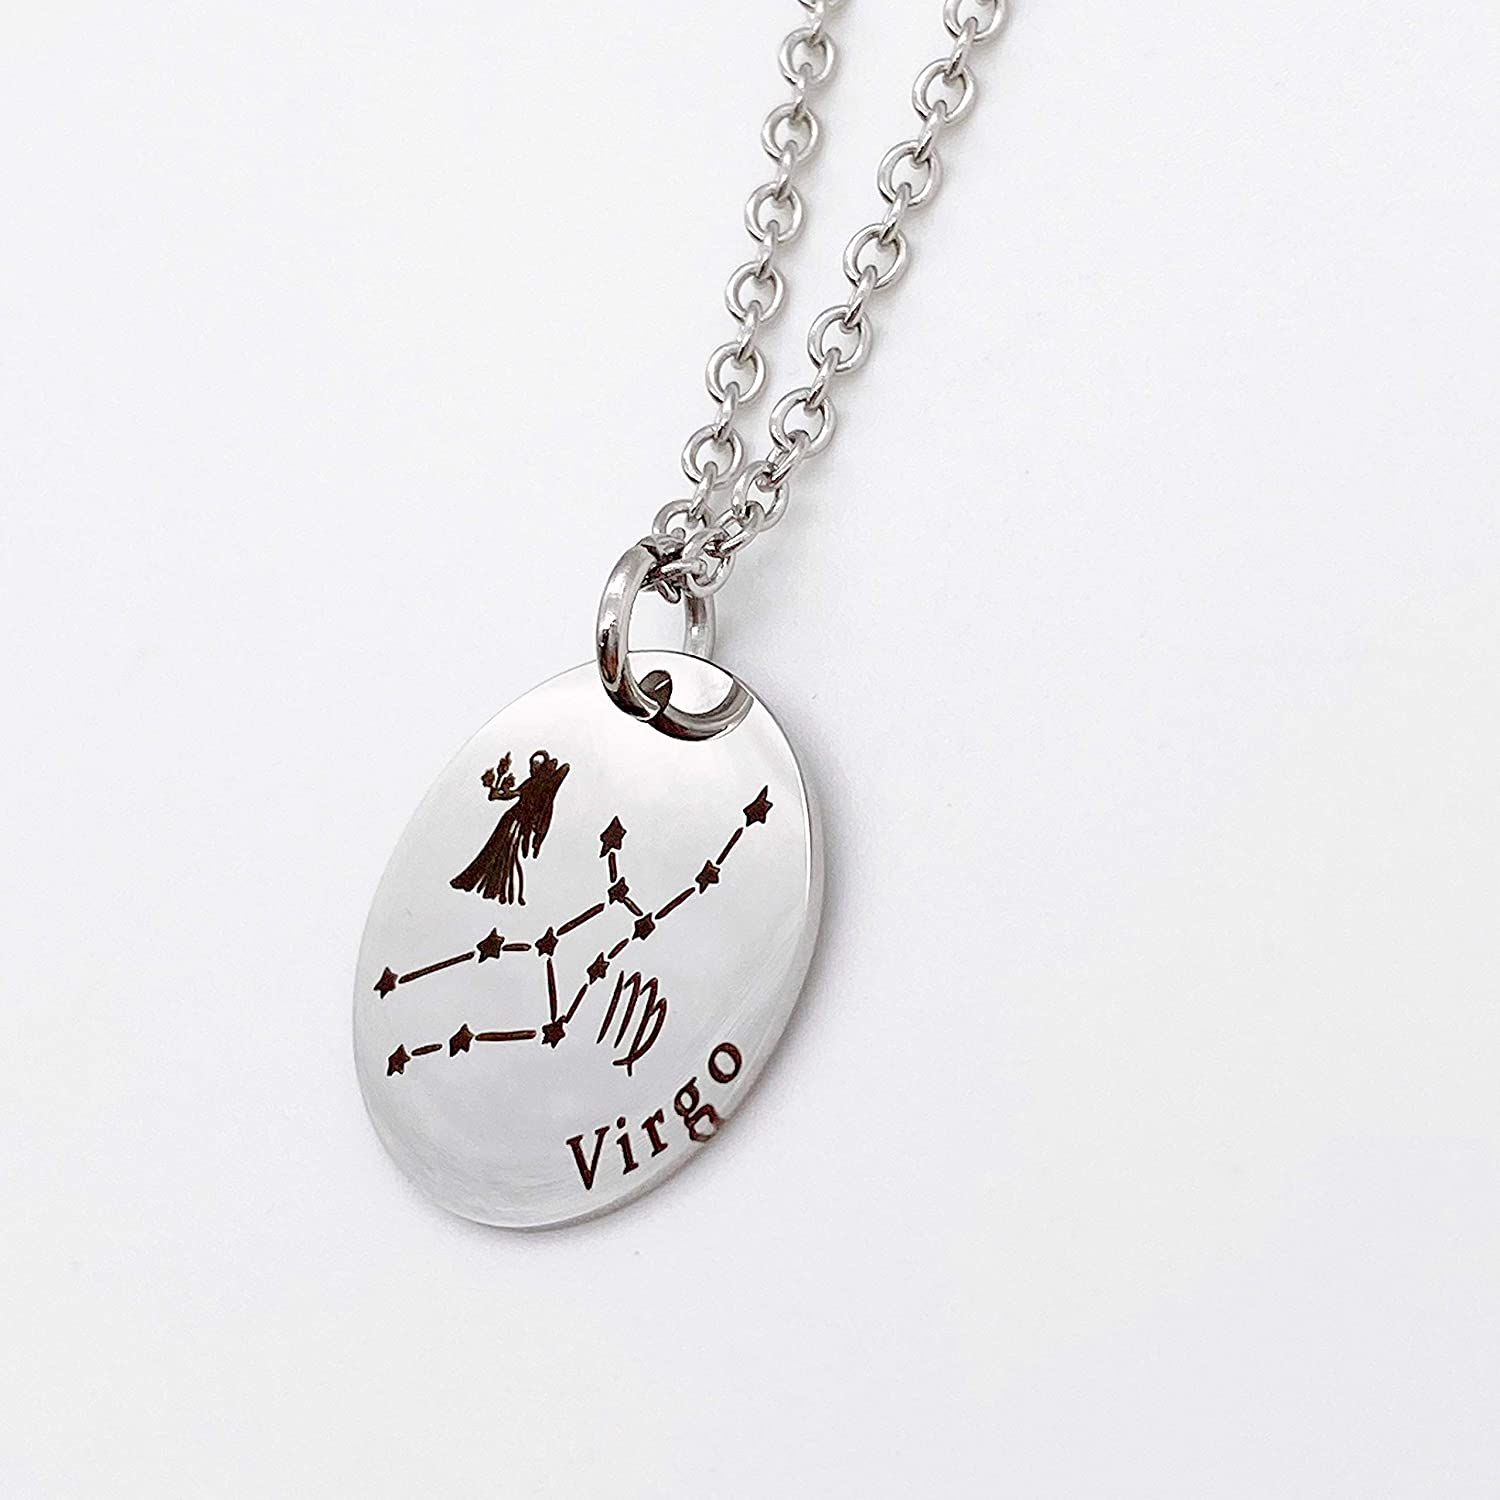 """Stainless Steel Personalized Engraved Virgo Symbol Zodiac Pendant on 18/"""" Chain"""